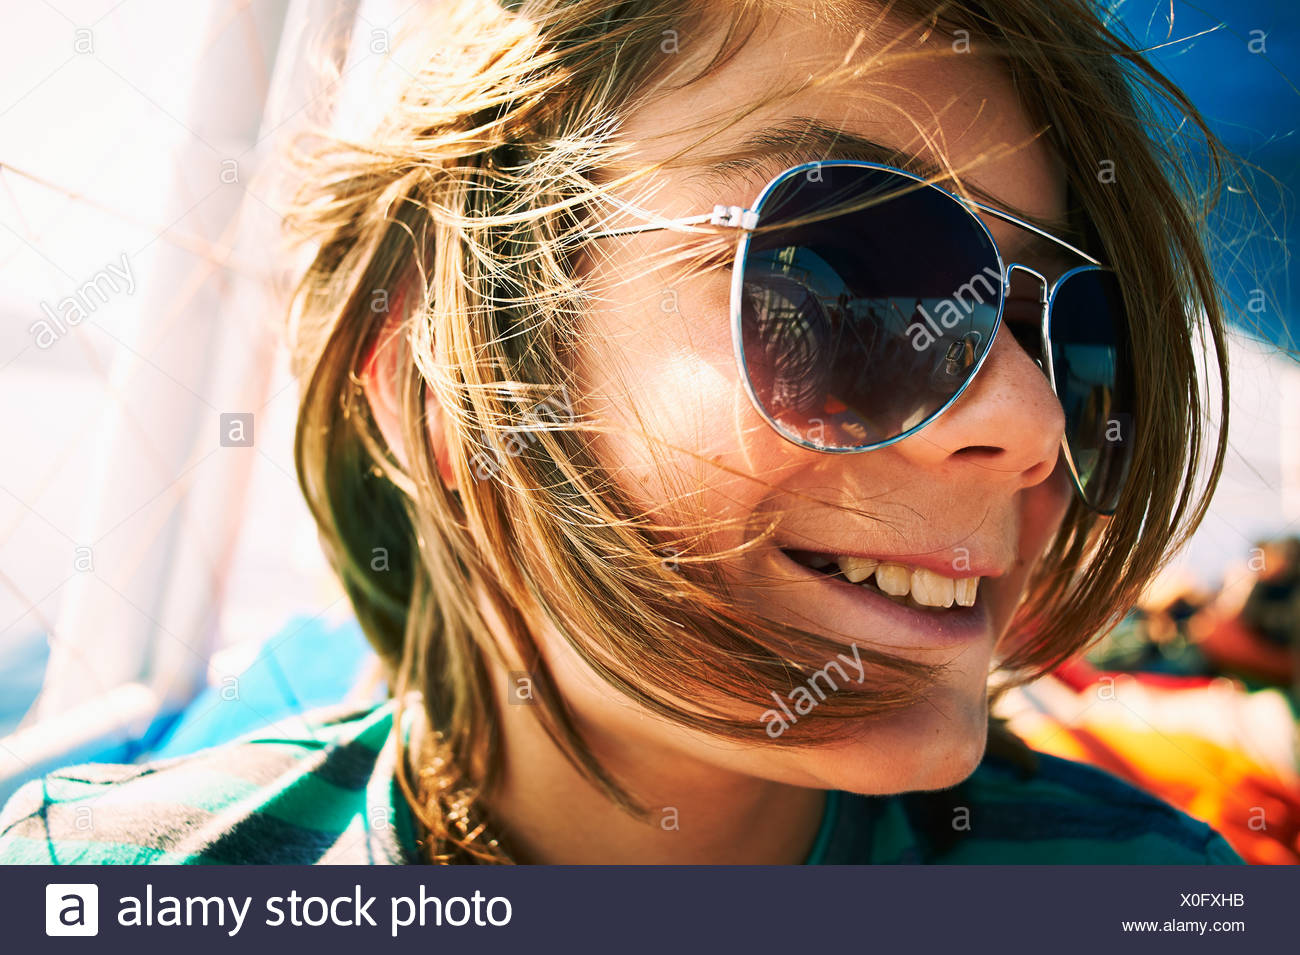 Close up candid portrait of boy in sunglasses Stock Photo